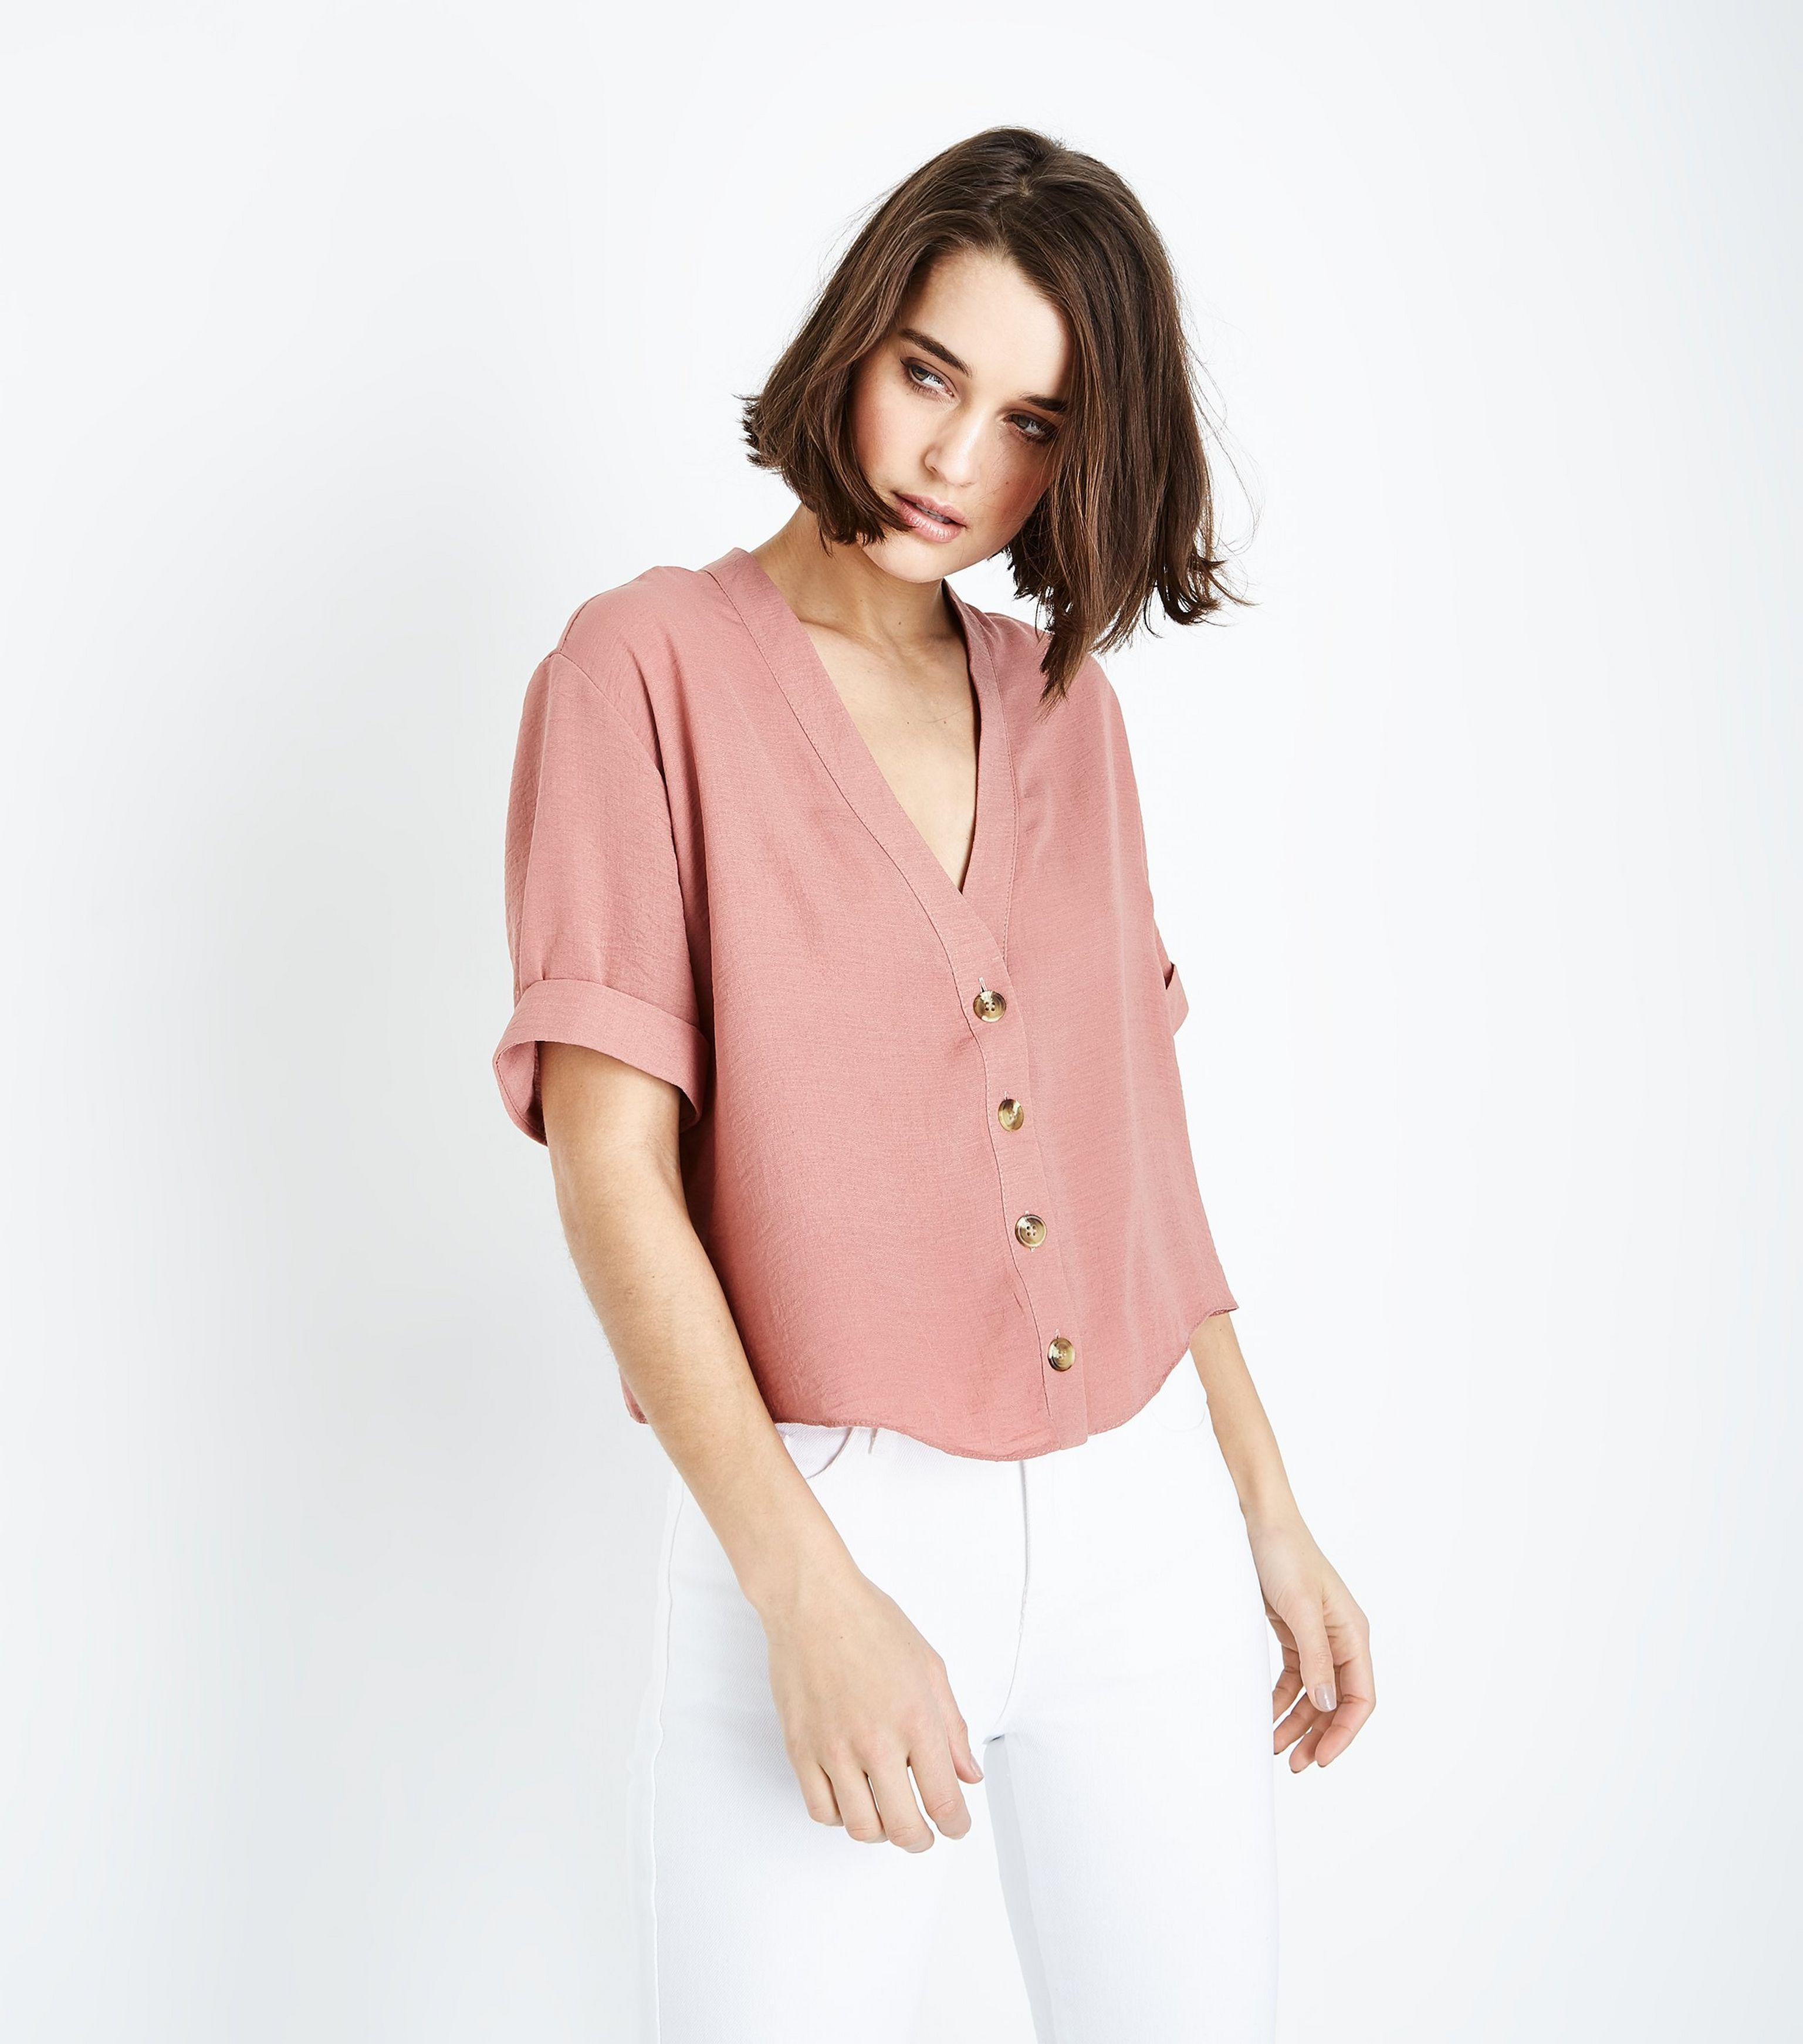 fec5b8cf60d0e4 New Look Pink V Neck Boxy Shirt in Pink - Lyst